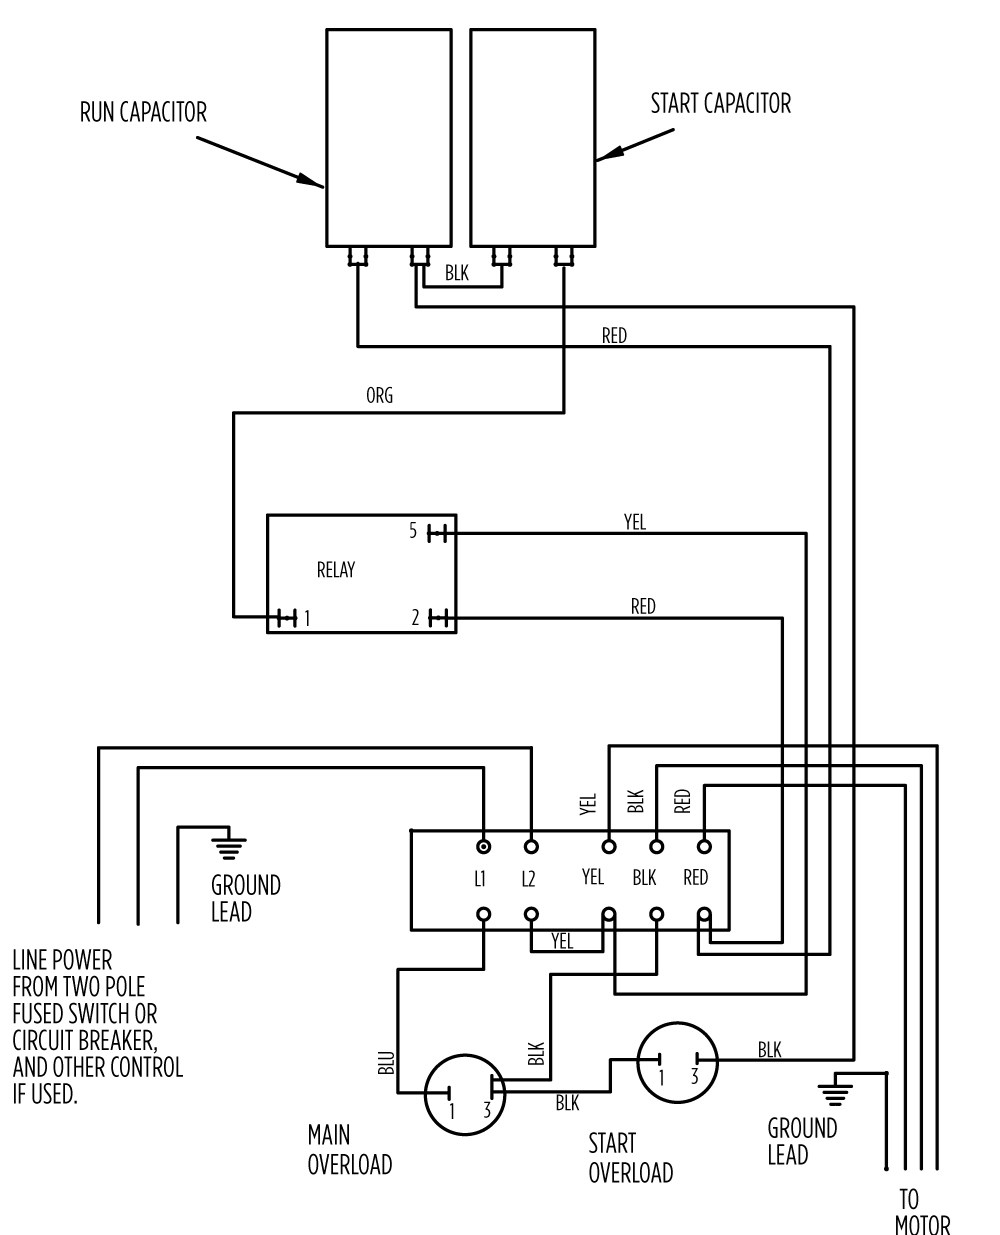 hight resolution of single phase submersible pump wiring diagram graphics model water 3 phase submersible water pump wiring diagram 3 phase pump wiring diagram